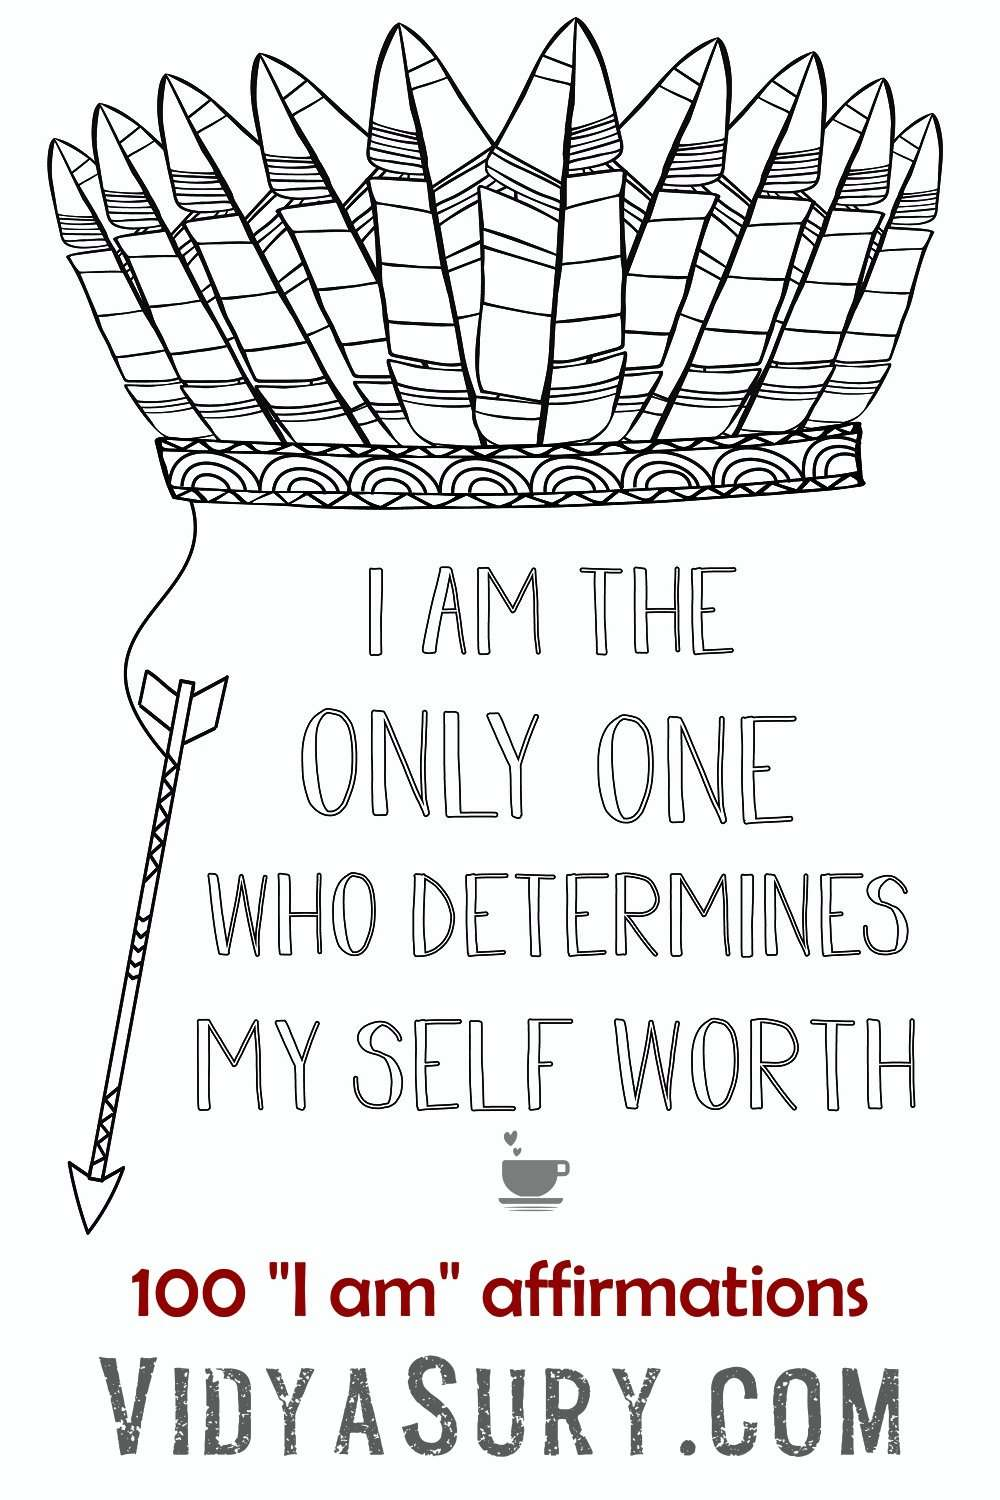 I am the only one who determines my self worth